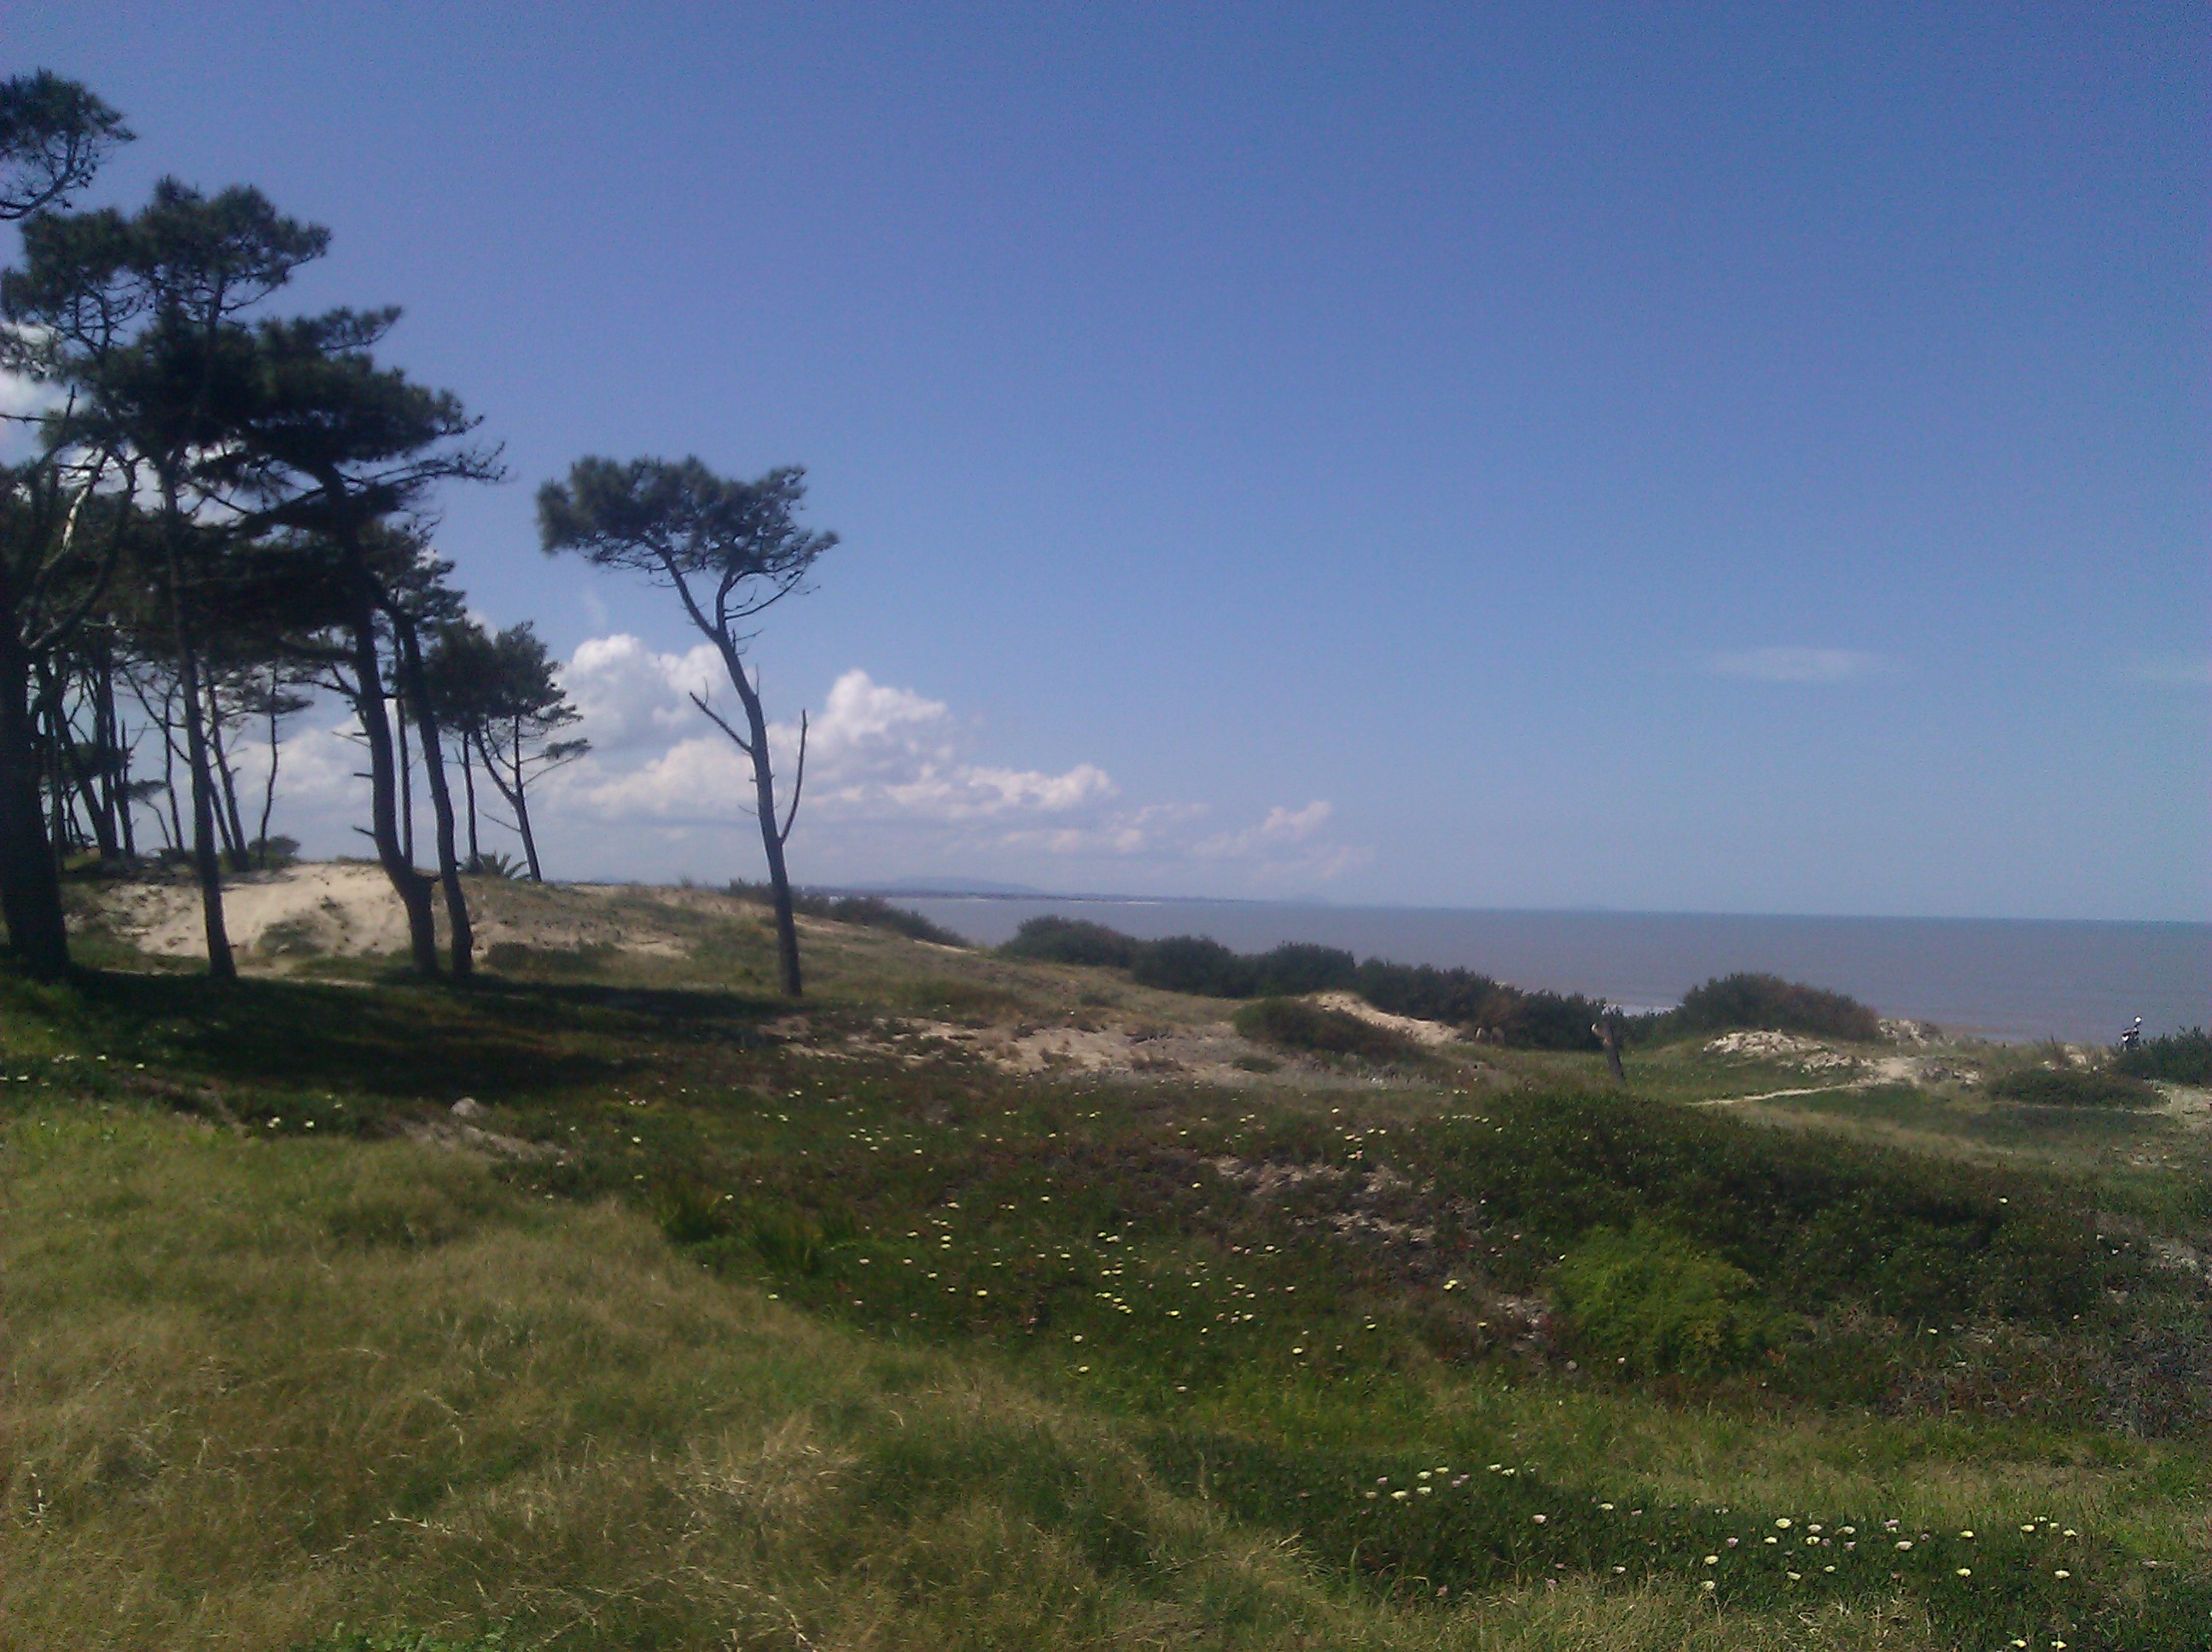 Windswept trees, dune grasses, and the blue sea